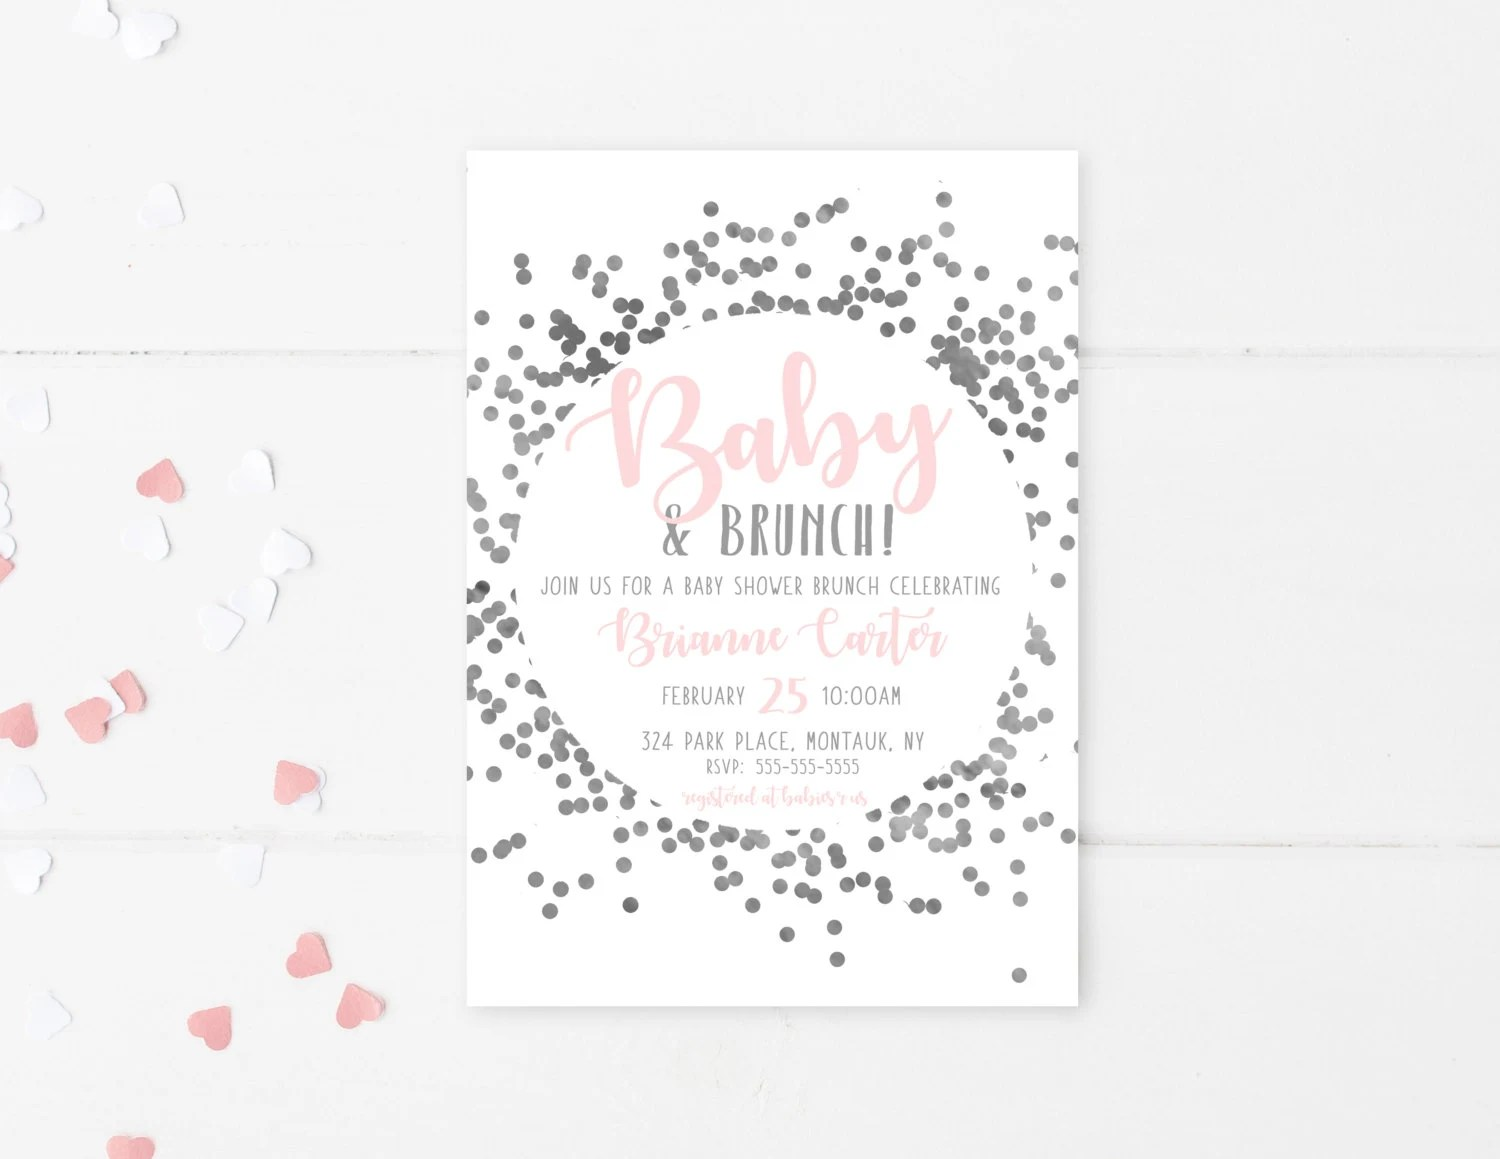 Customized invitations made just for you by TrendyPrintables